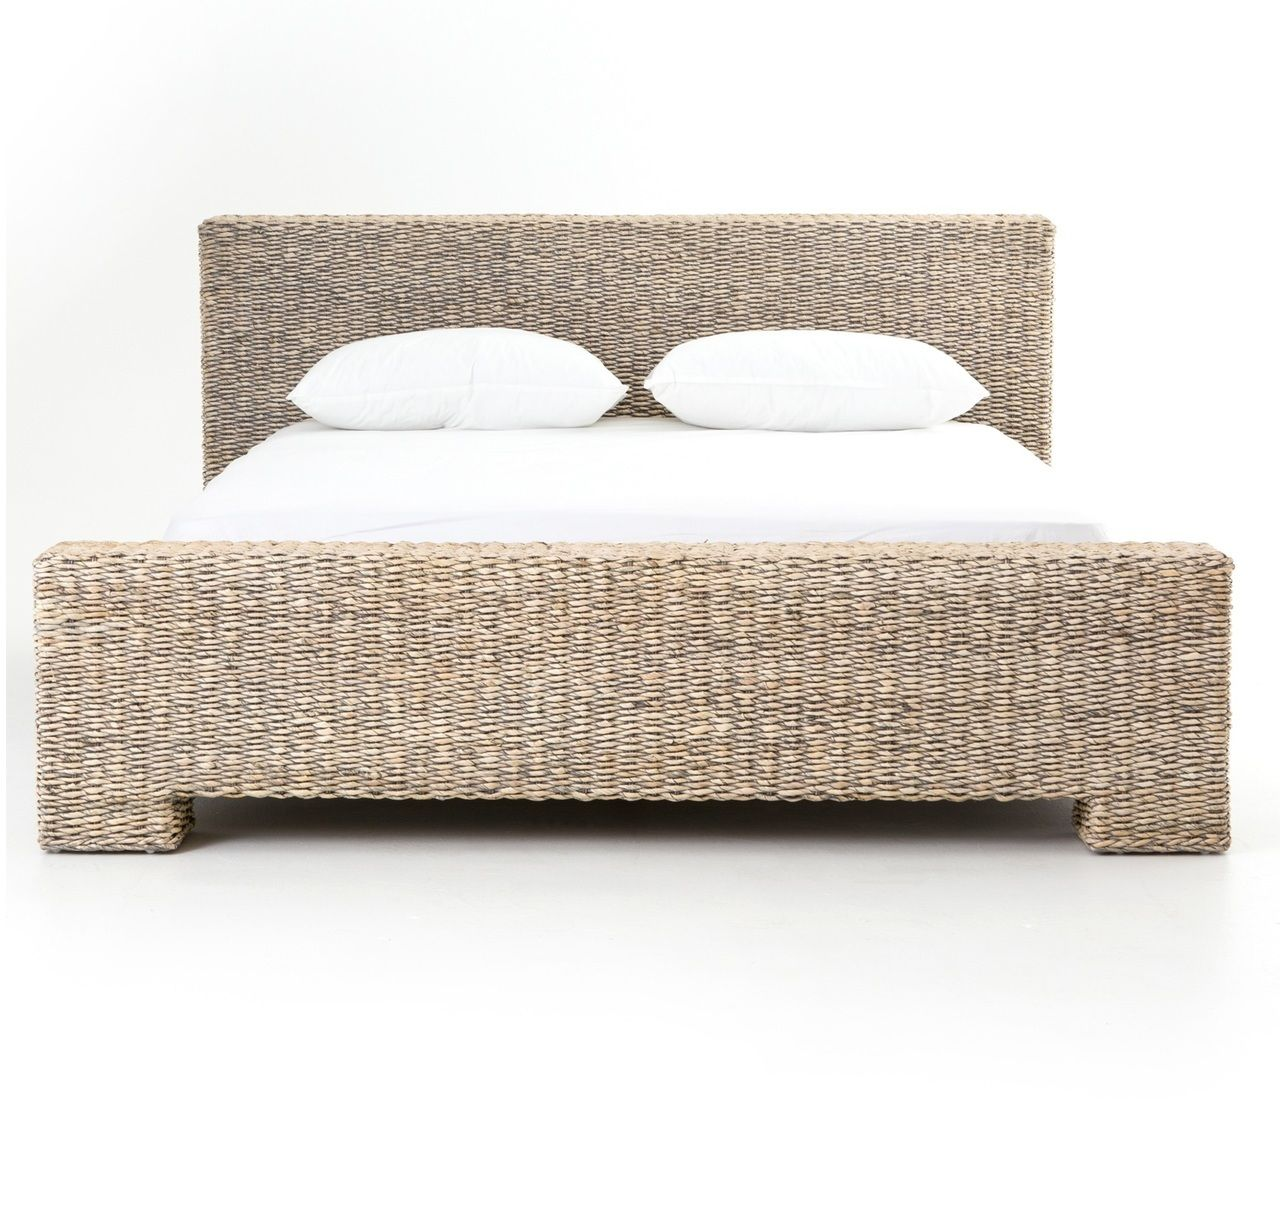 Abaca Mattress Pin By Zin Home On Beautiful Beds In 2019 Bed White Queen Bed